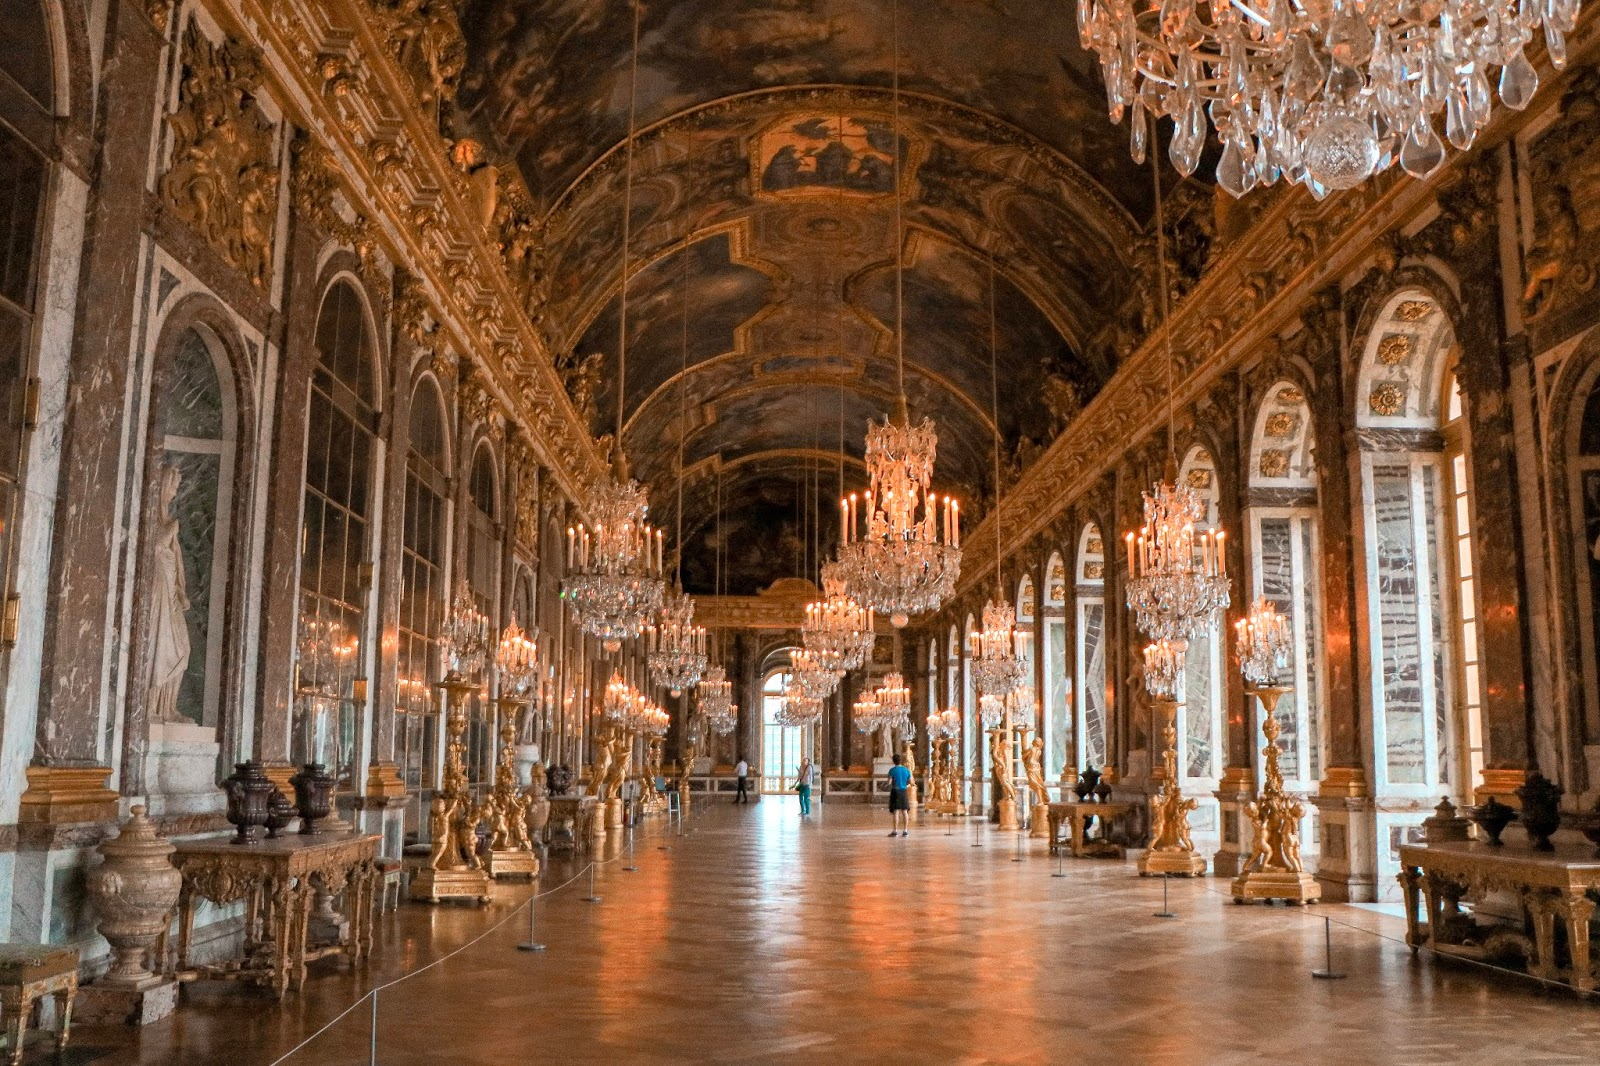 My Travel Background : au revoir Paris - Versailles